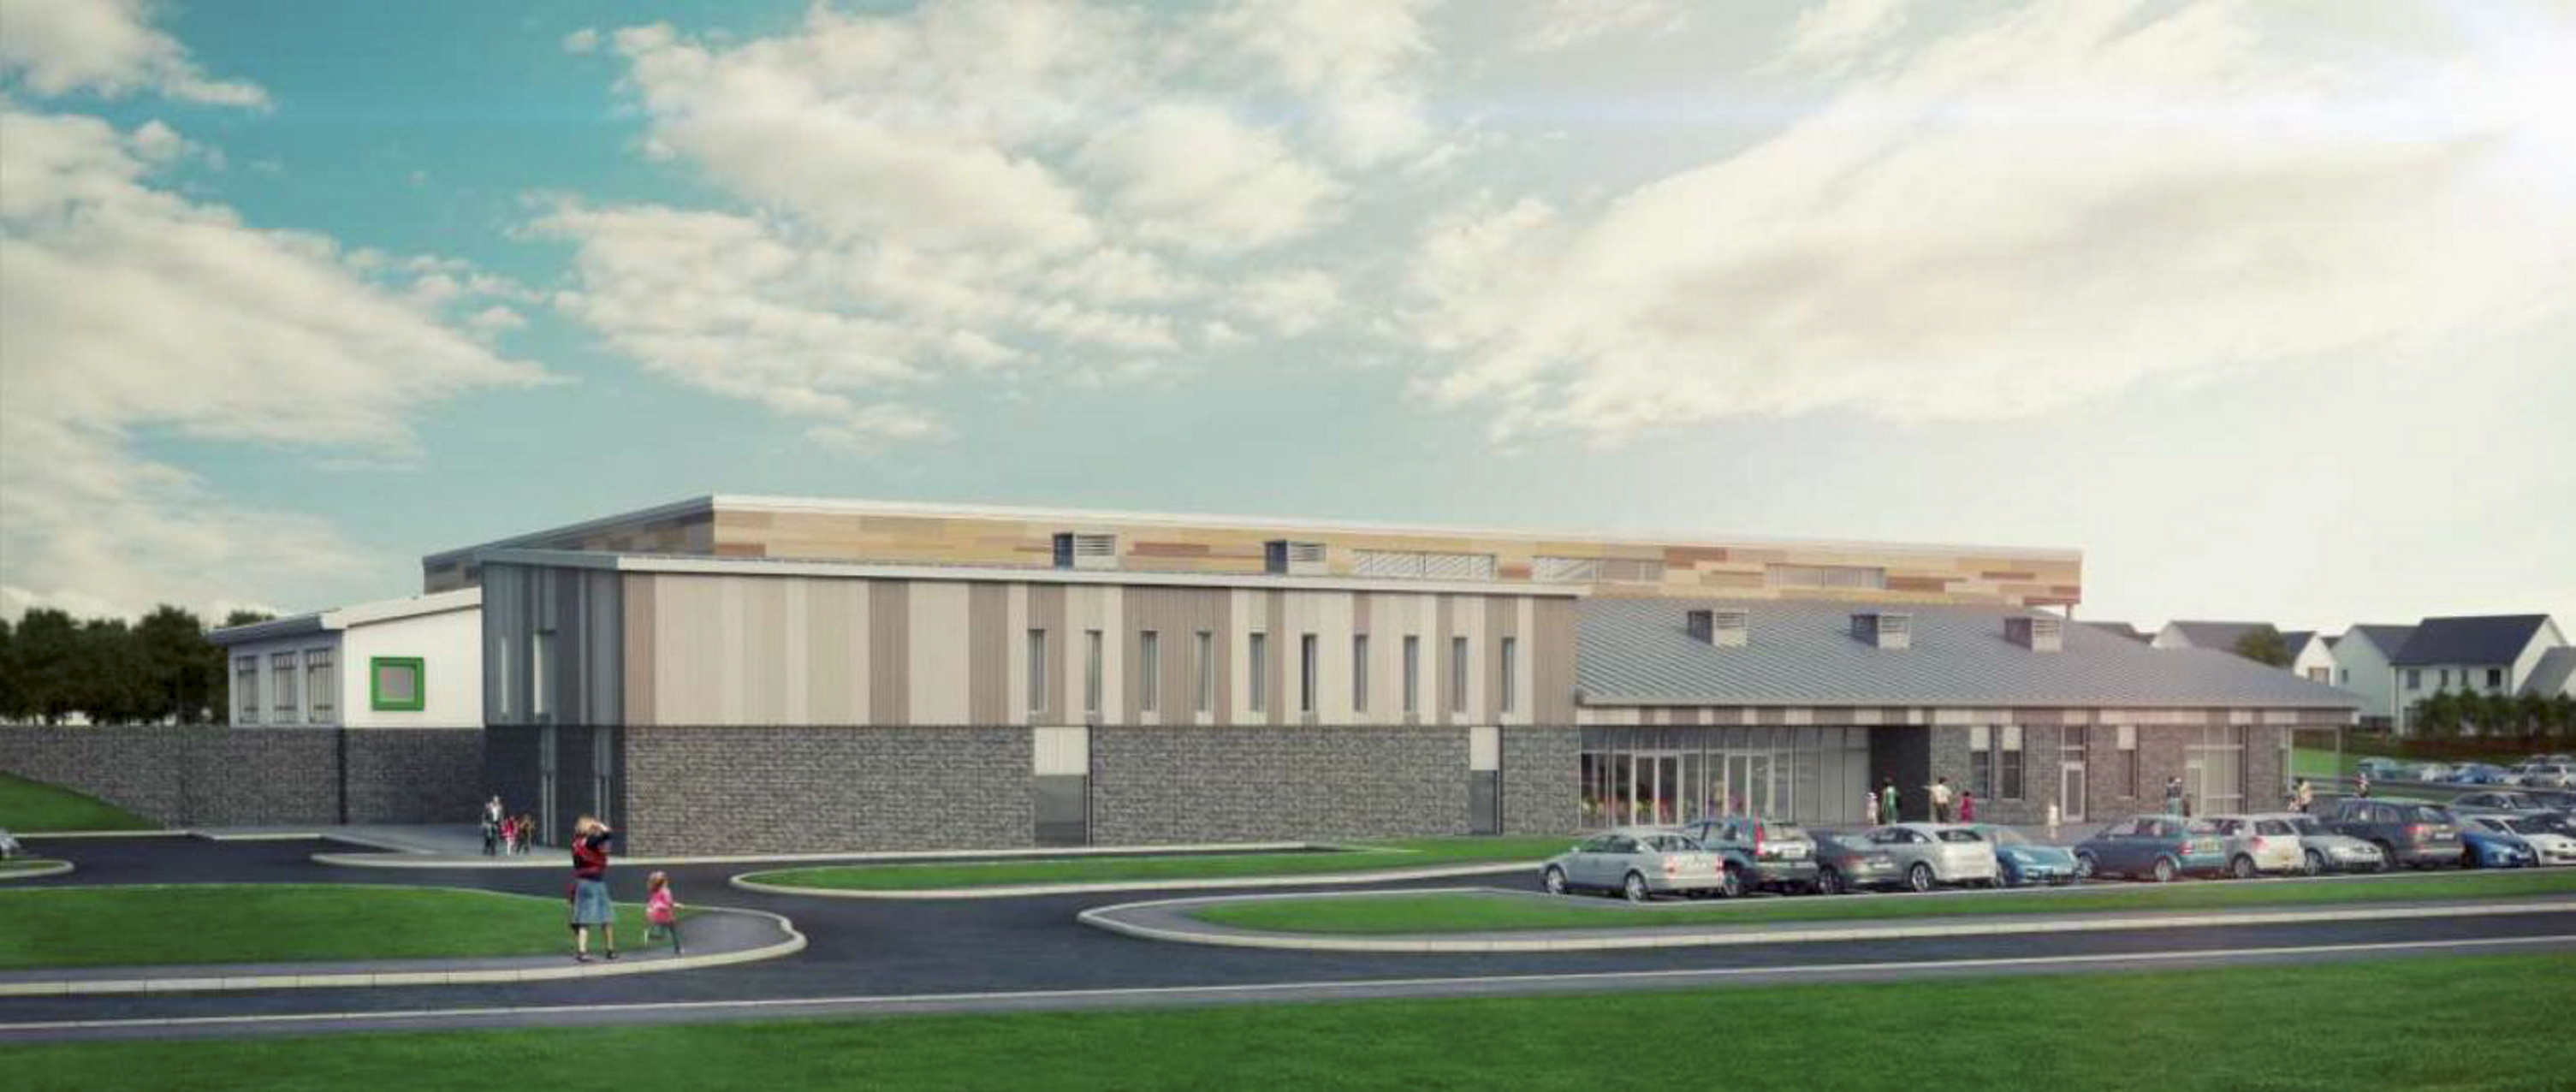 An artist's impression of the newly-approved Hillside School